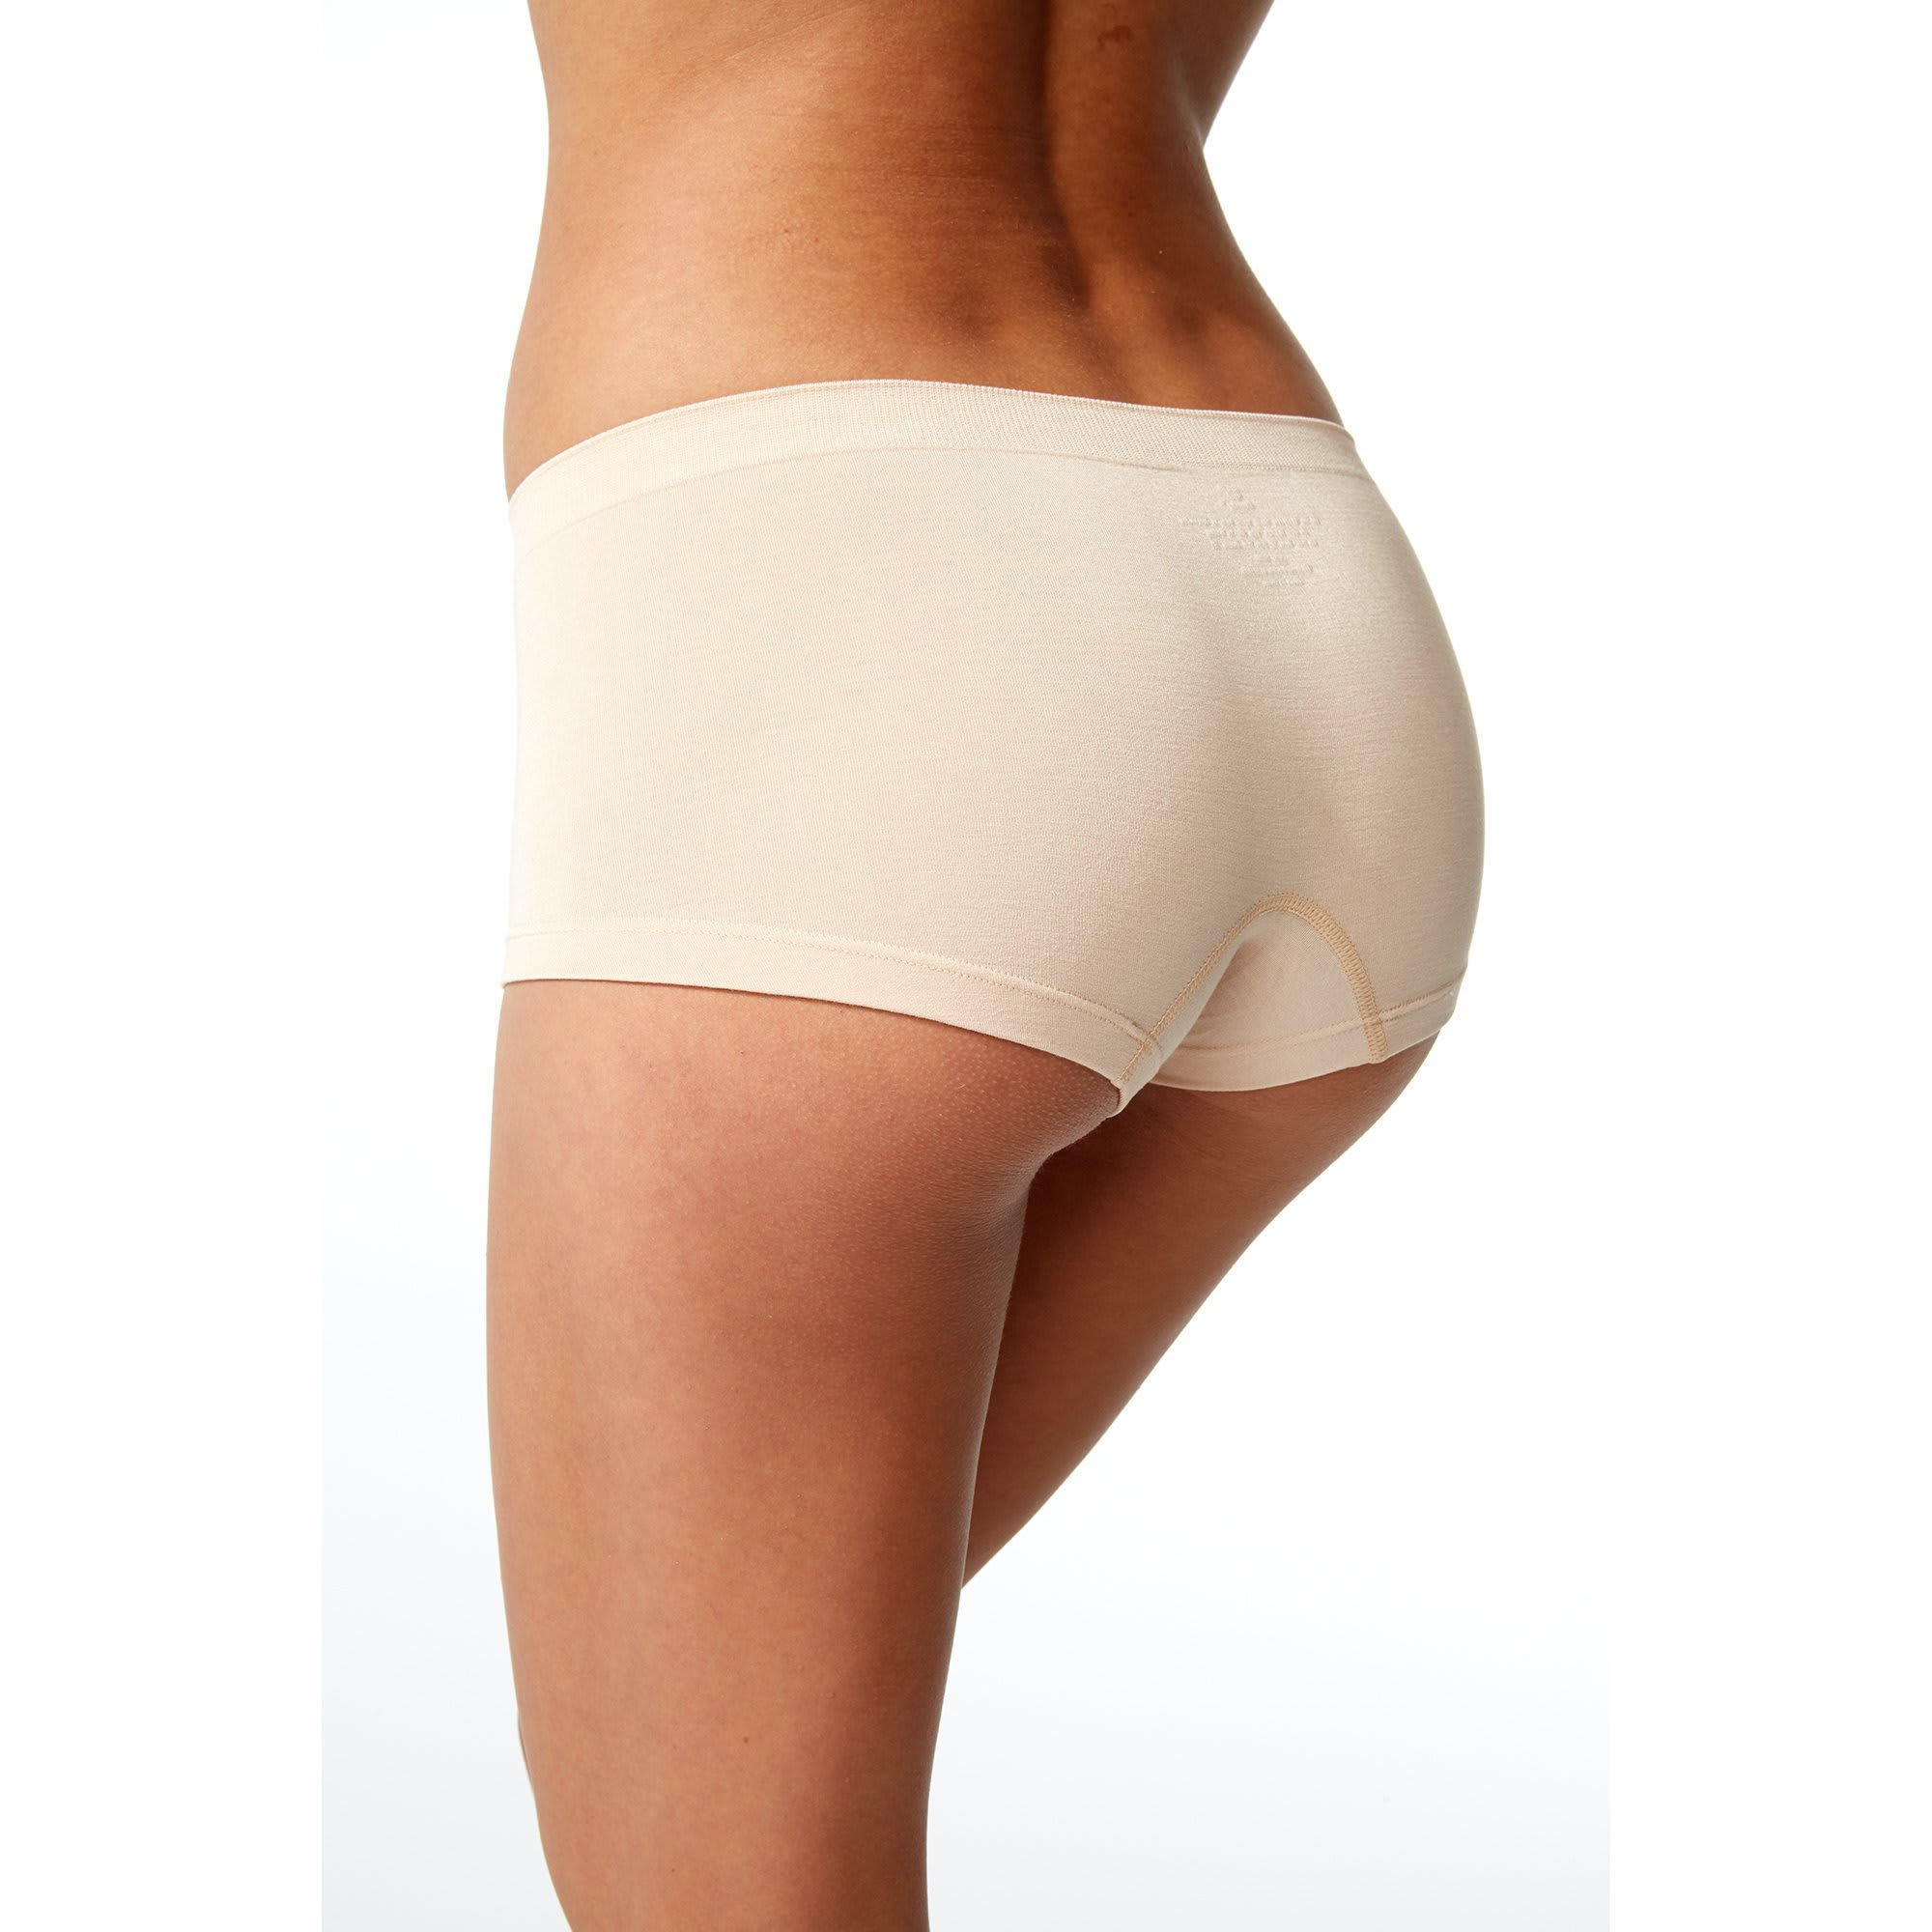 Boody Wear Women's Boyleg Briefs